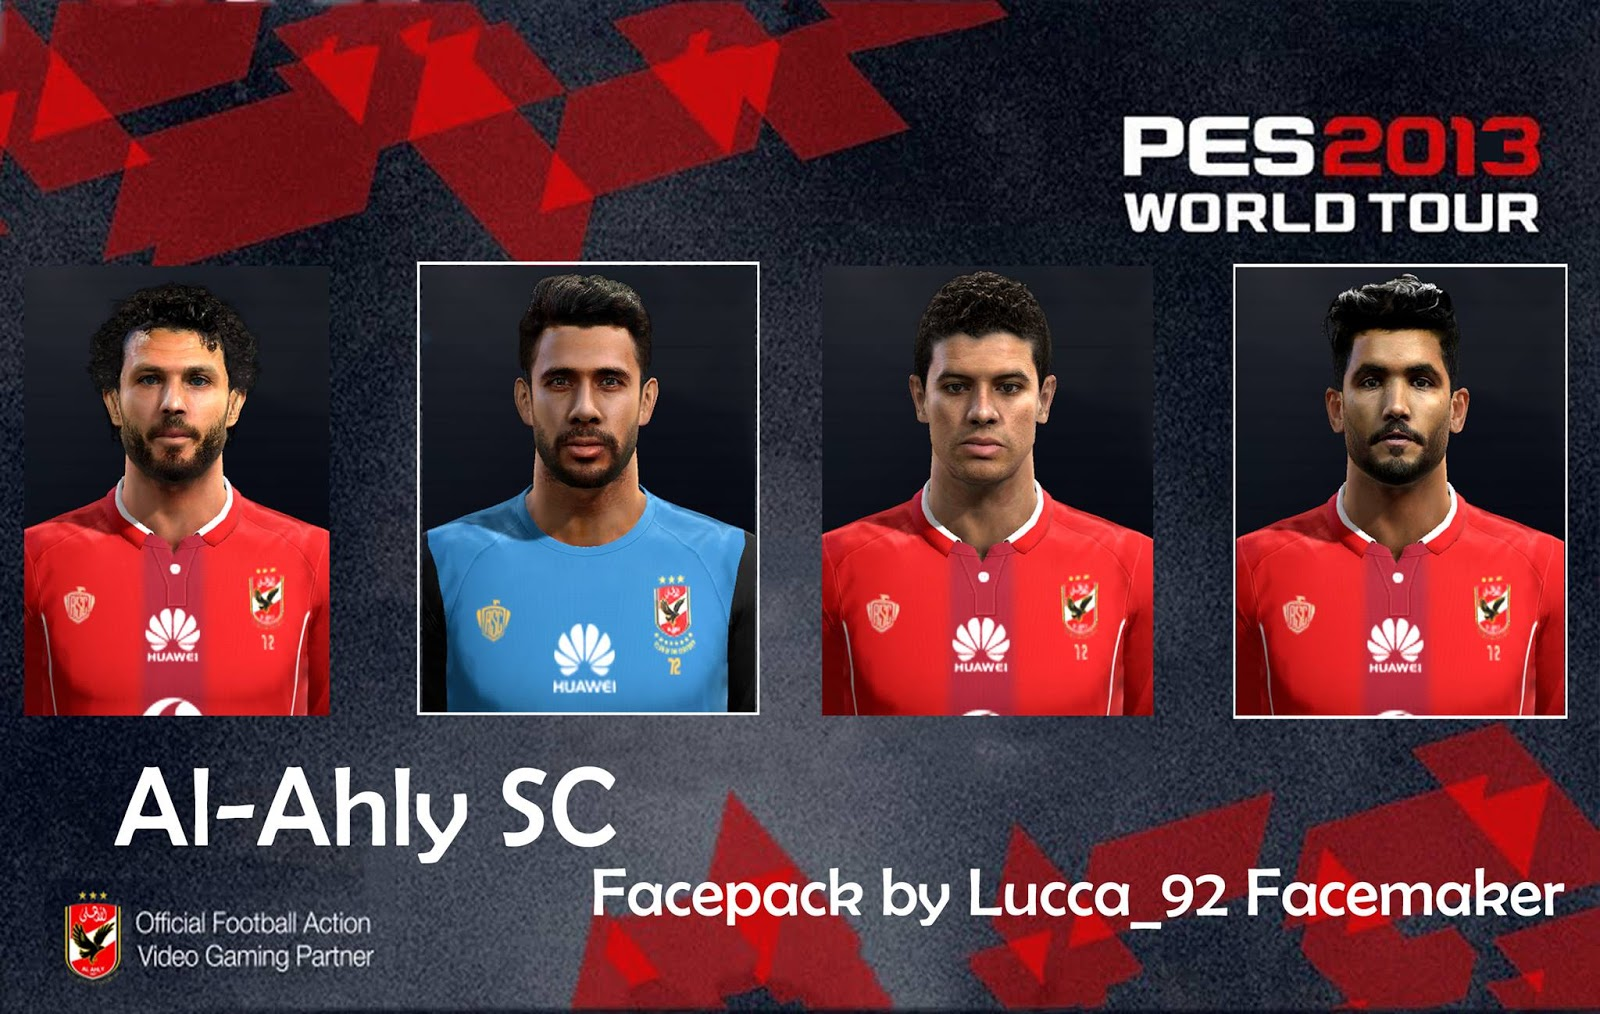 PES 2013 Al-Ahly SC Facepack by Lucca_92 Facemaker